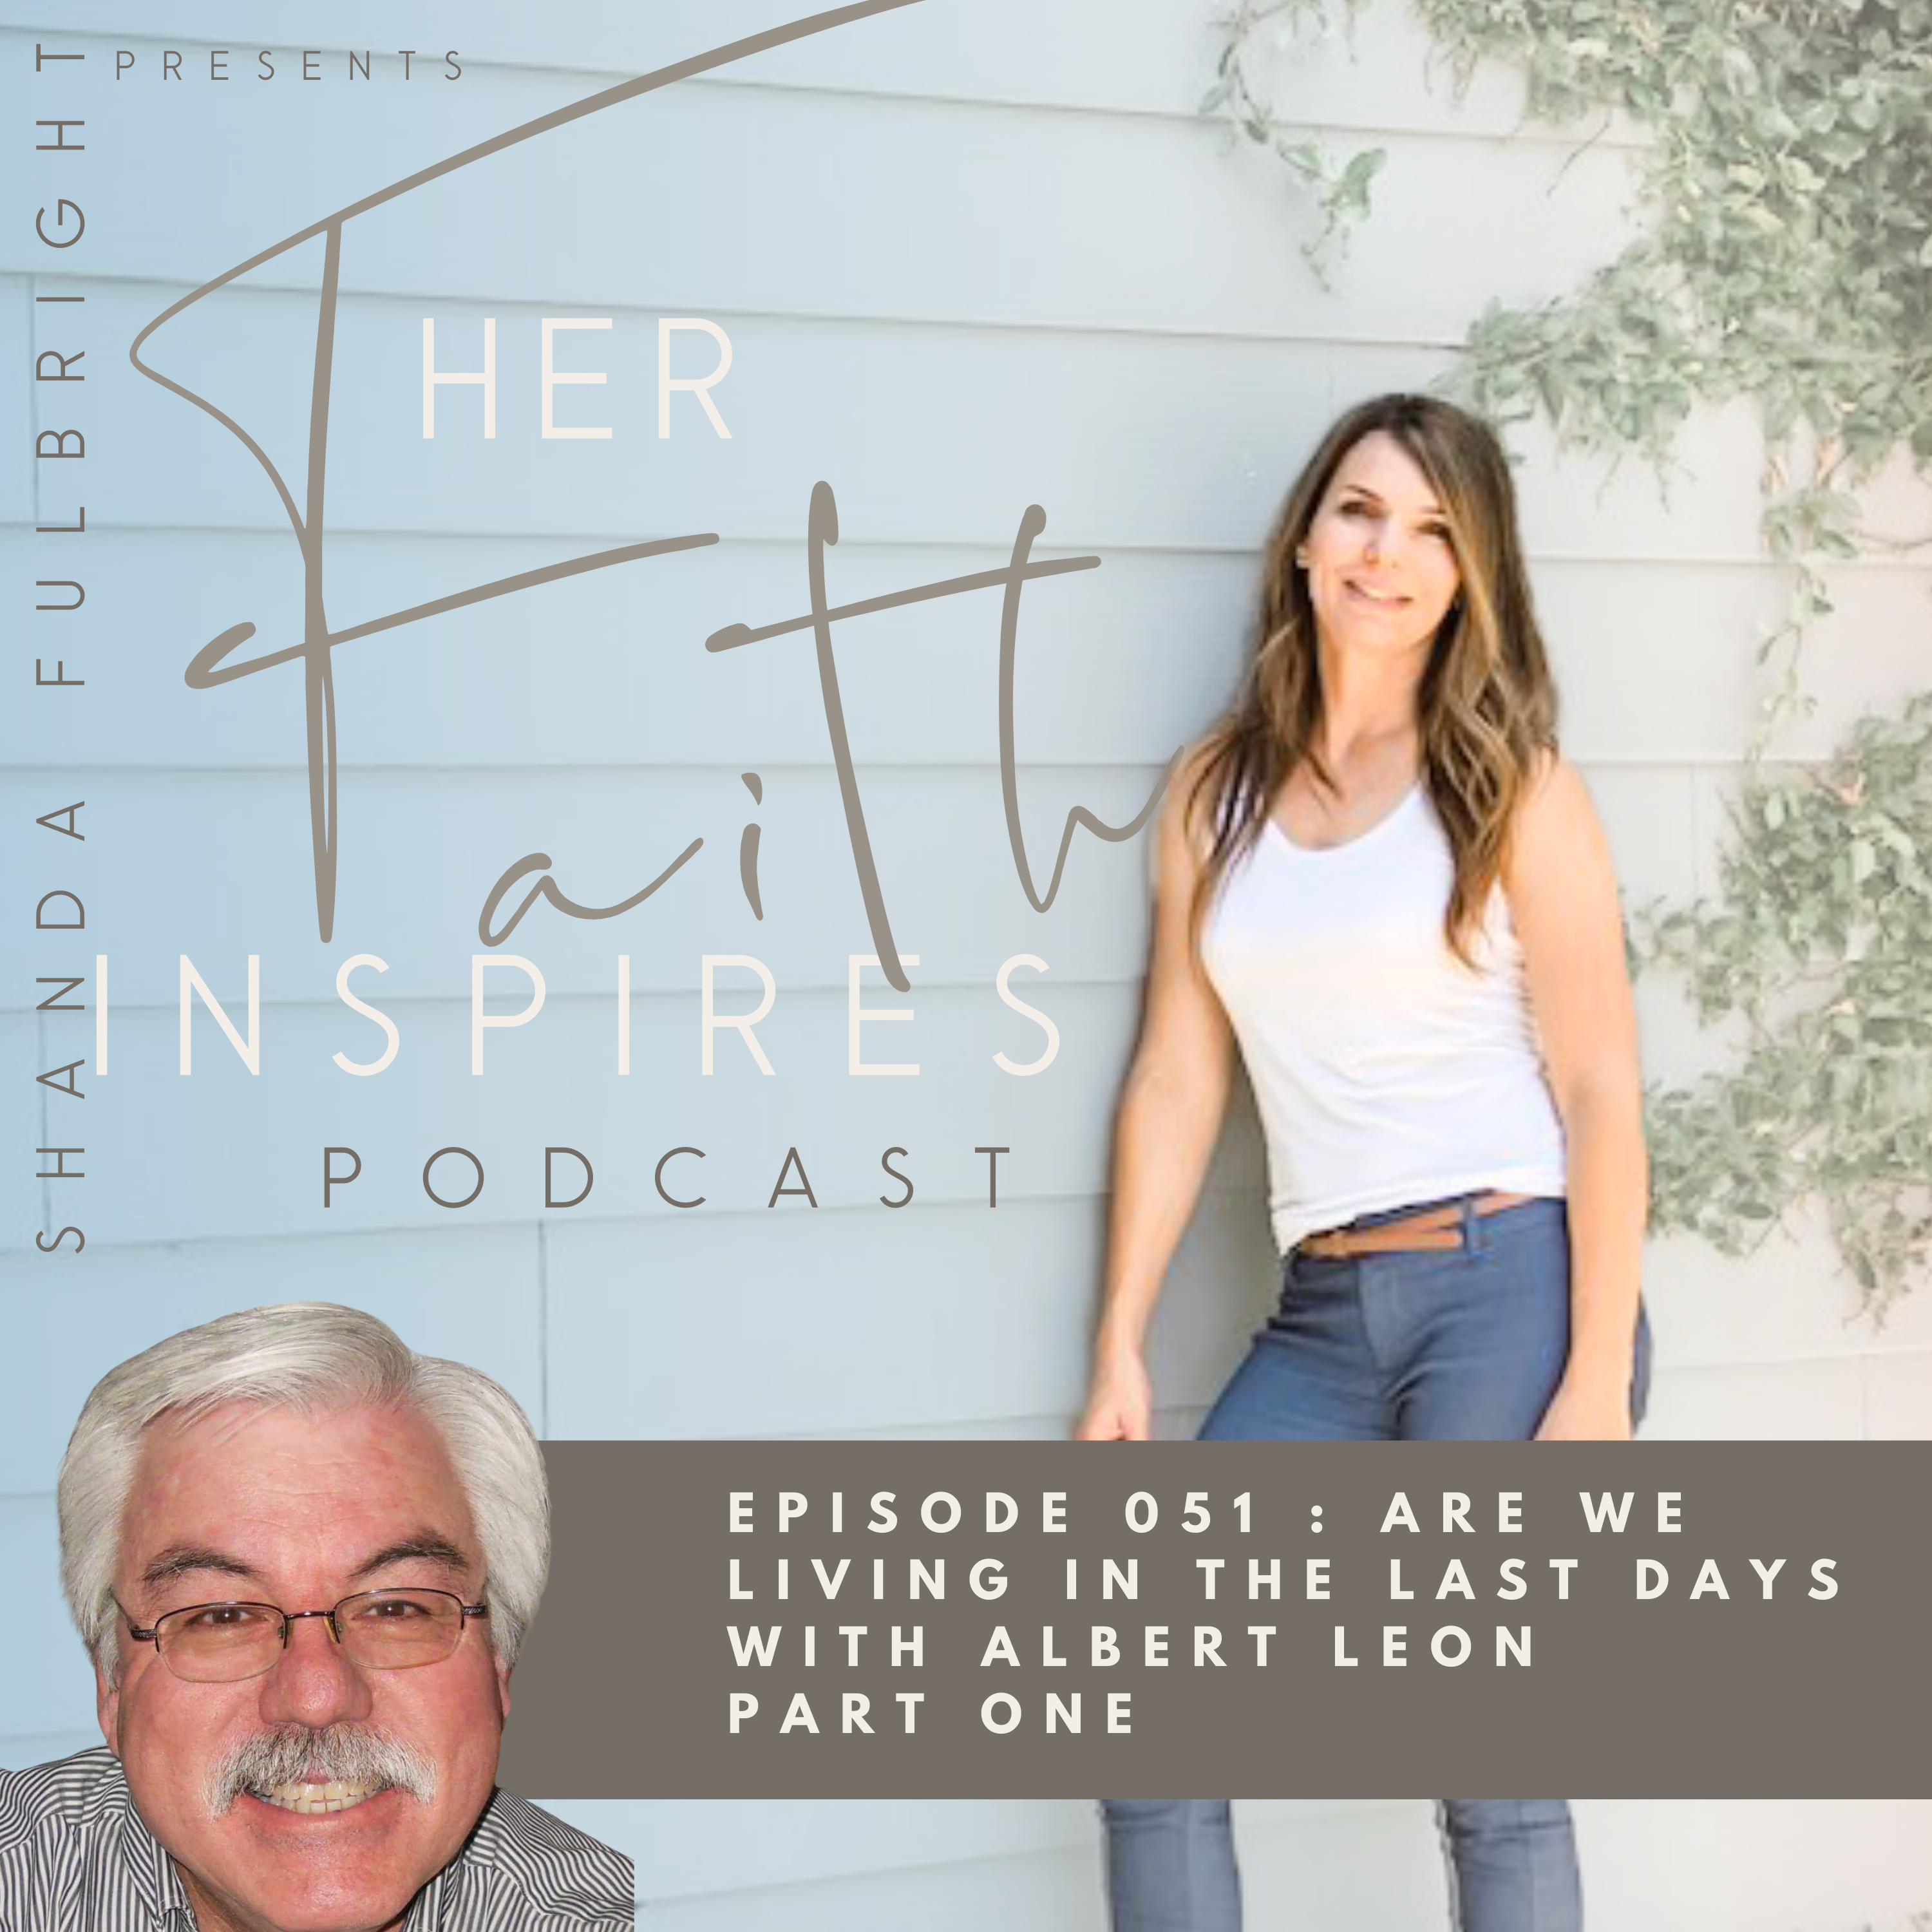 SF Podcast Episode 48 2 - HER FAITH INSPIRES 51 : Are we living in the last days with Albert Leon Part One